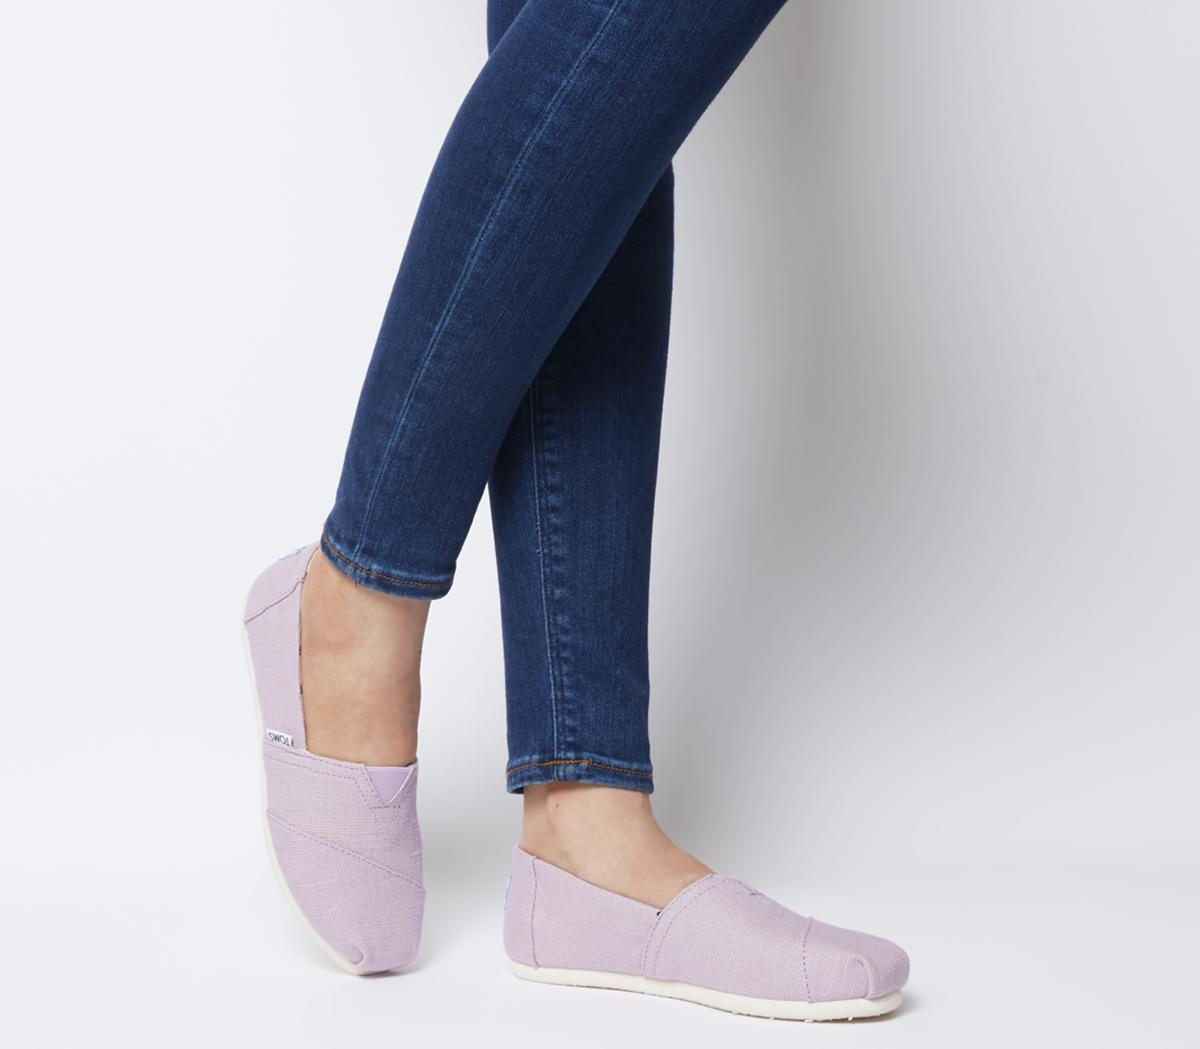 Seasonal Classic Slip On Flats